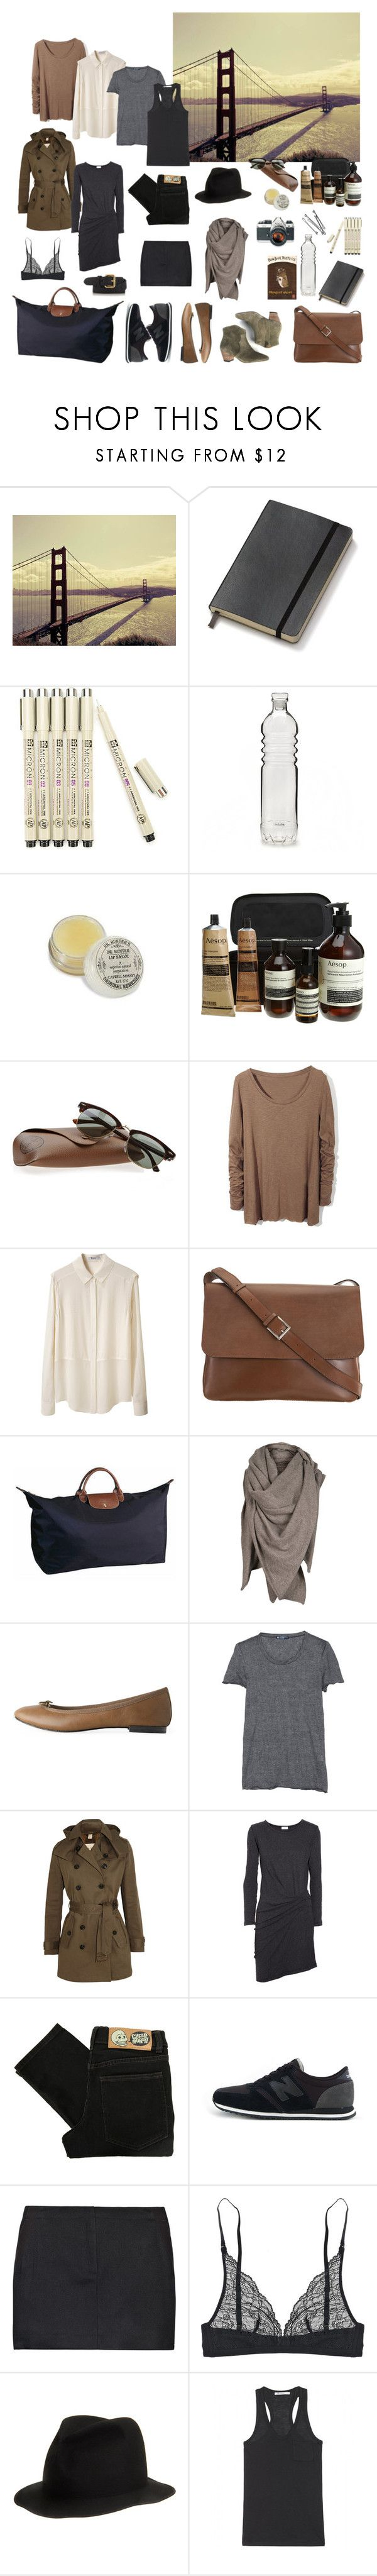 """""""Packing for San Francisco"""" by coffeestainedcashmere ❤ liked on Polyvore featuring Moleskine, Nikon, Aesop, Ray-Ban, T By Alexander Wang, Valextra, Longchamp, AllSaints, Repetto and Petit Bateau"""